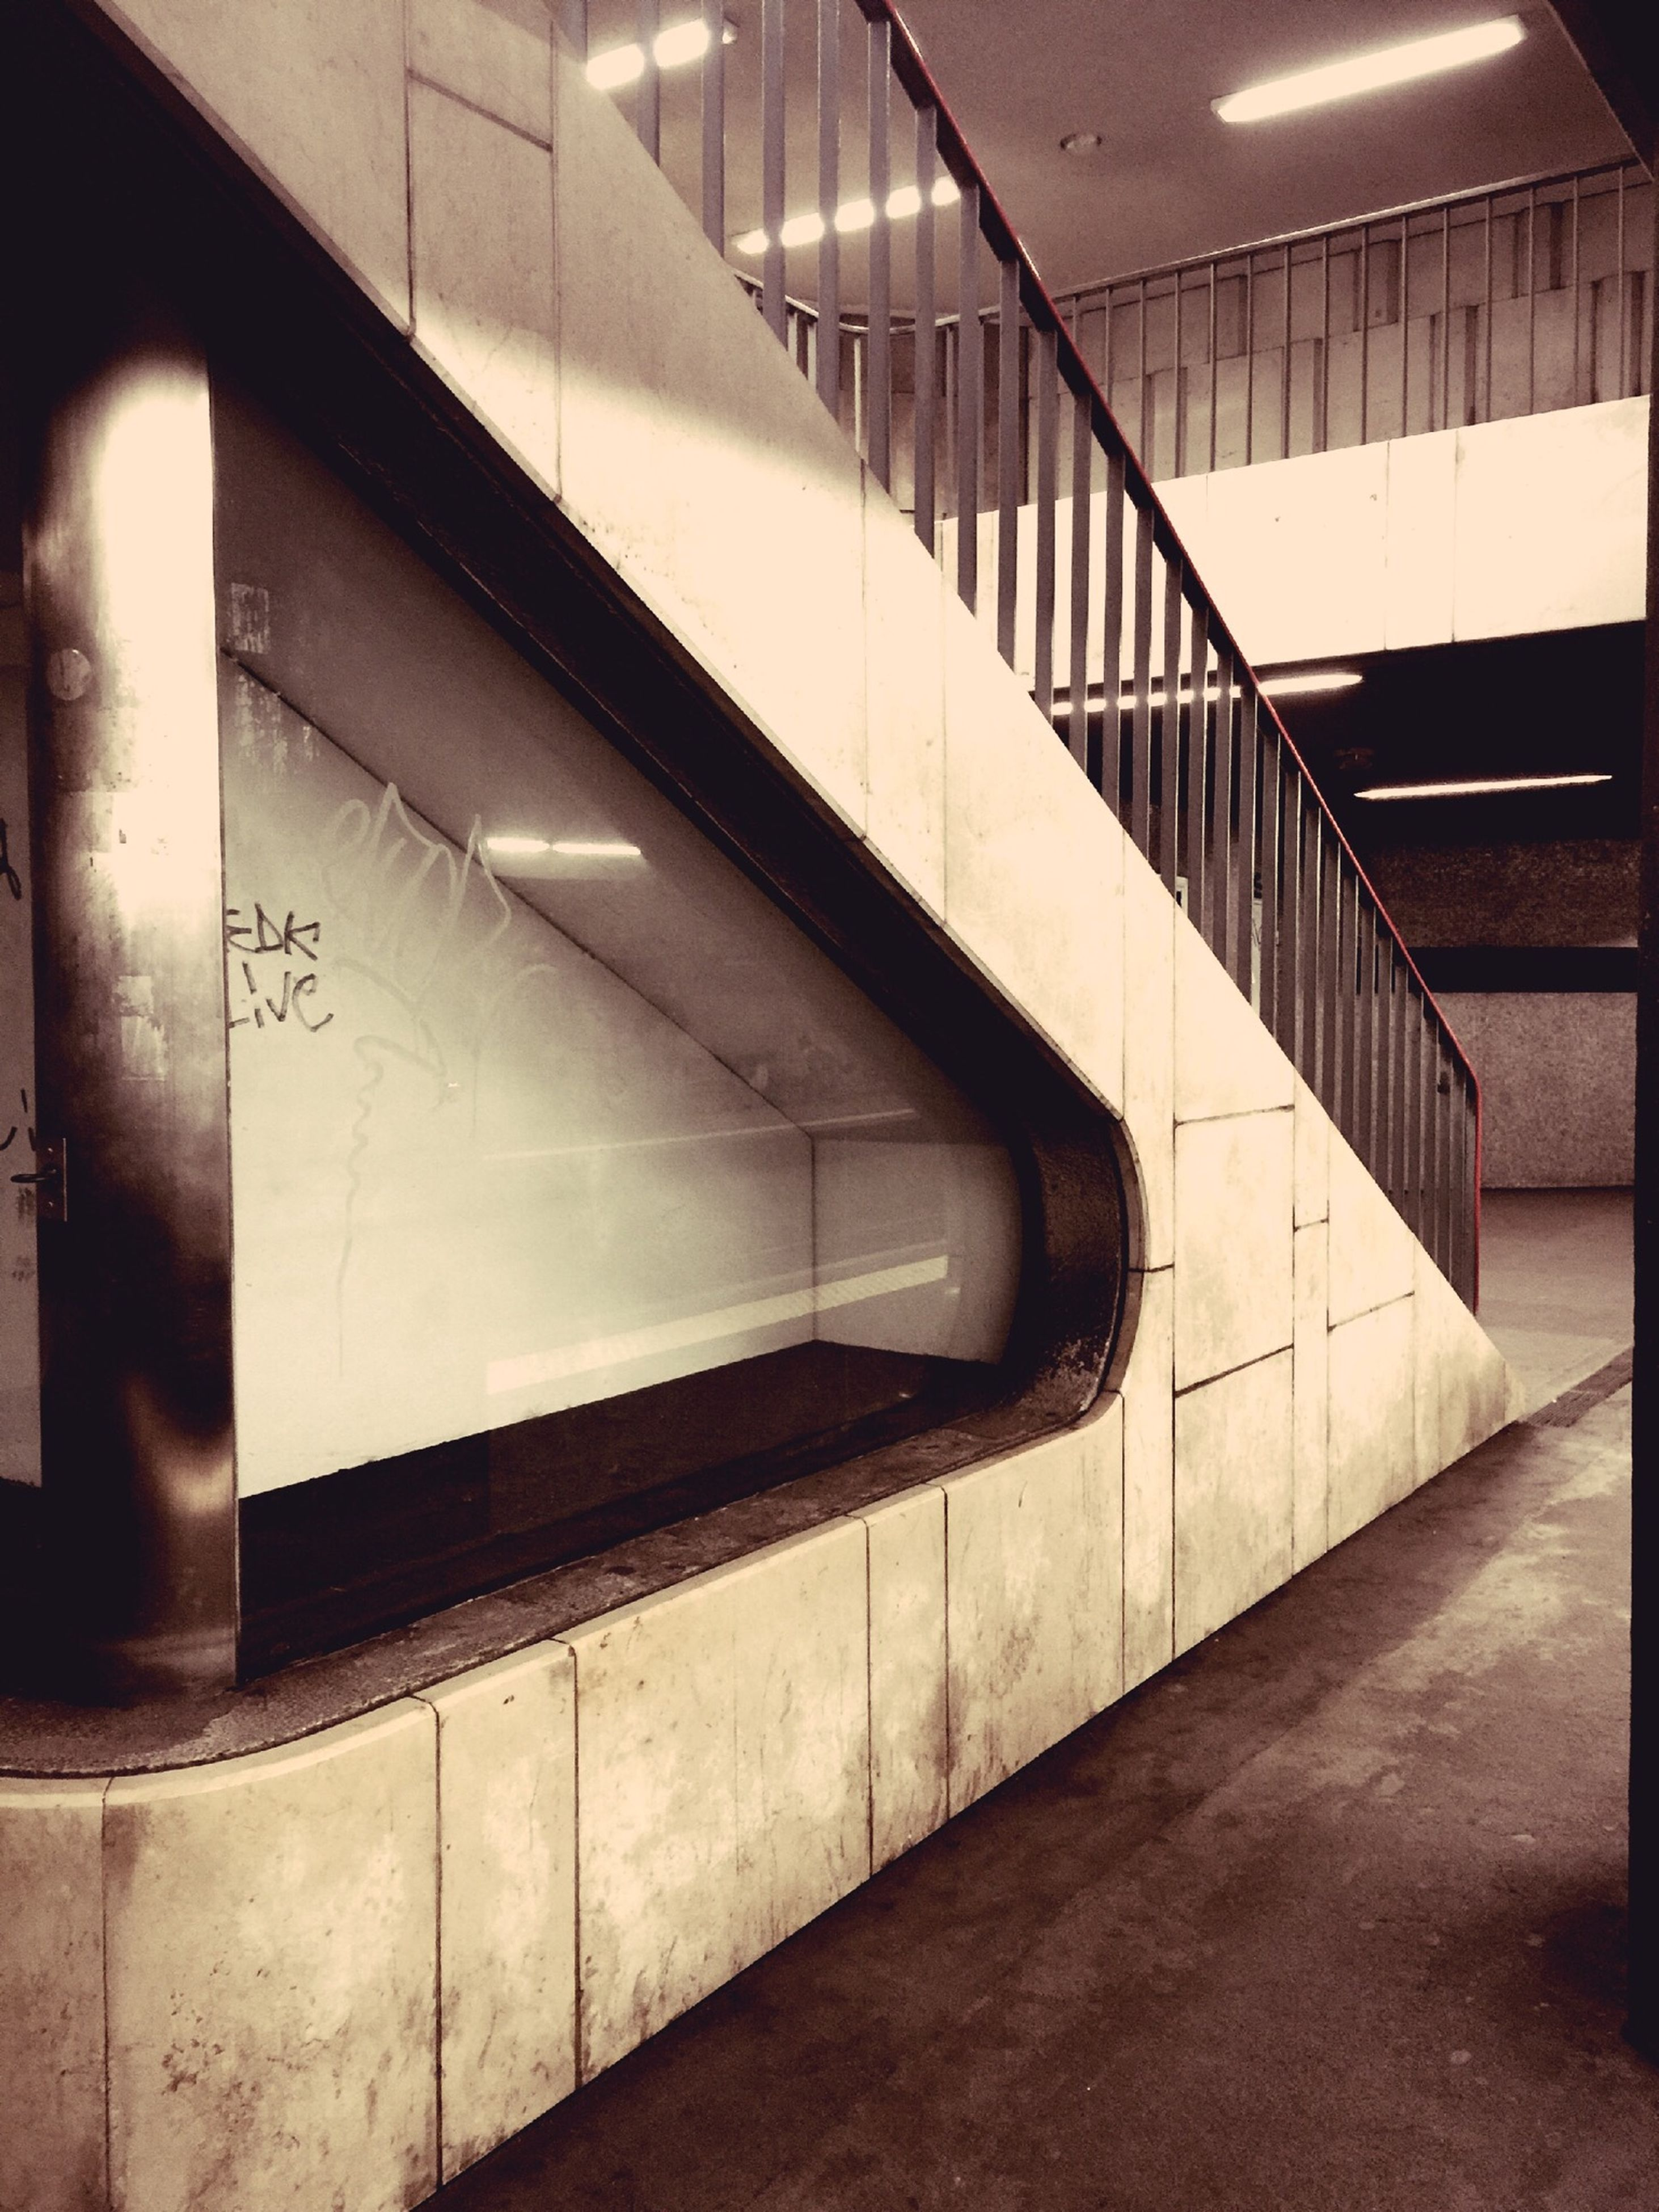 indoors, steps and staircases, steps, staircase, architecture, built structure, railing, wall - building feature, empty, flooring, building, subway, the way forward, absence, corridor, modern, no people, ceiling, illuminated, tiled floor